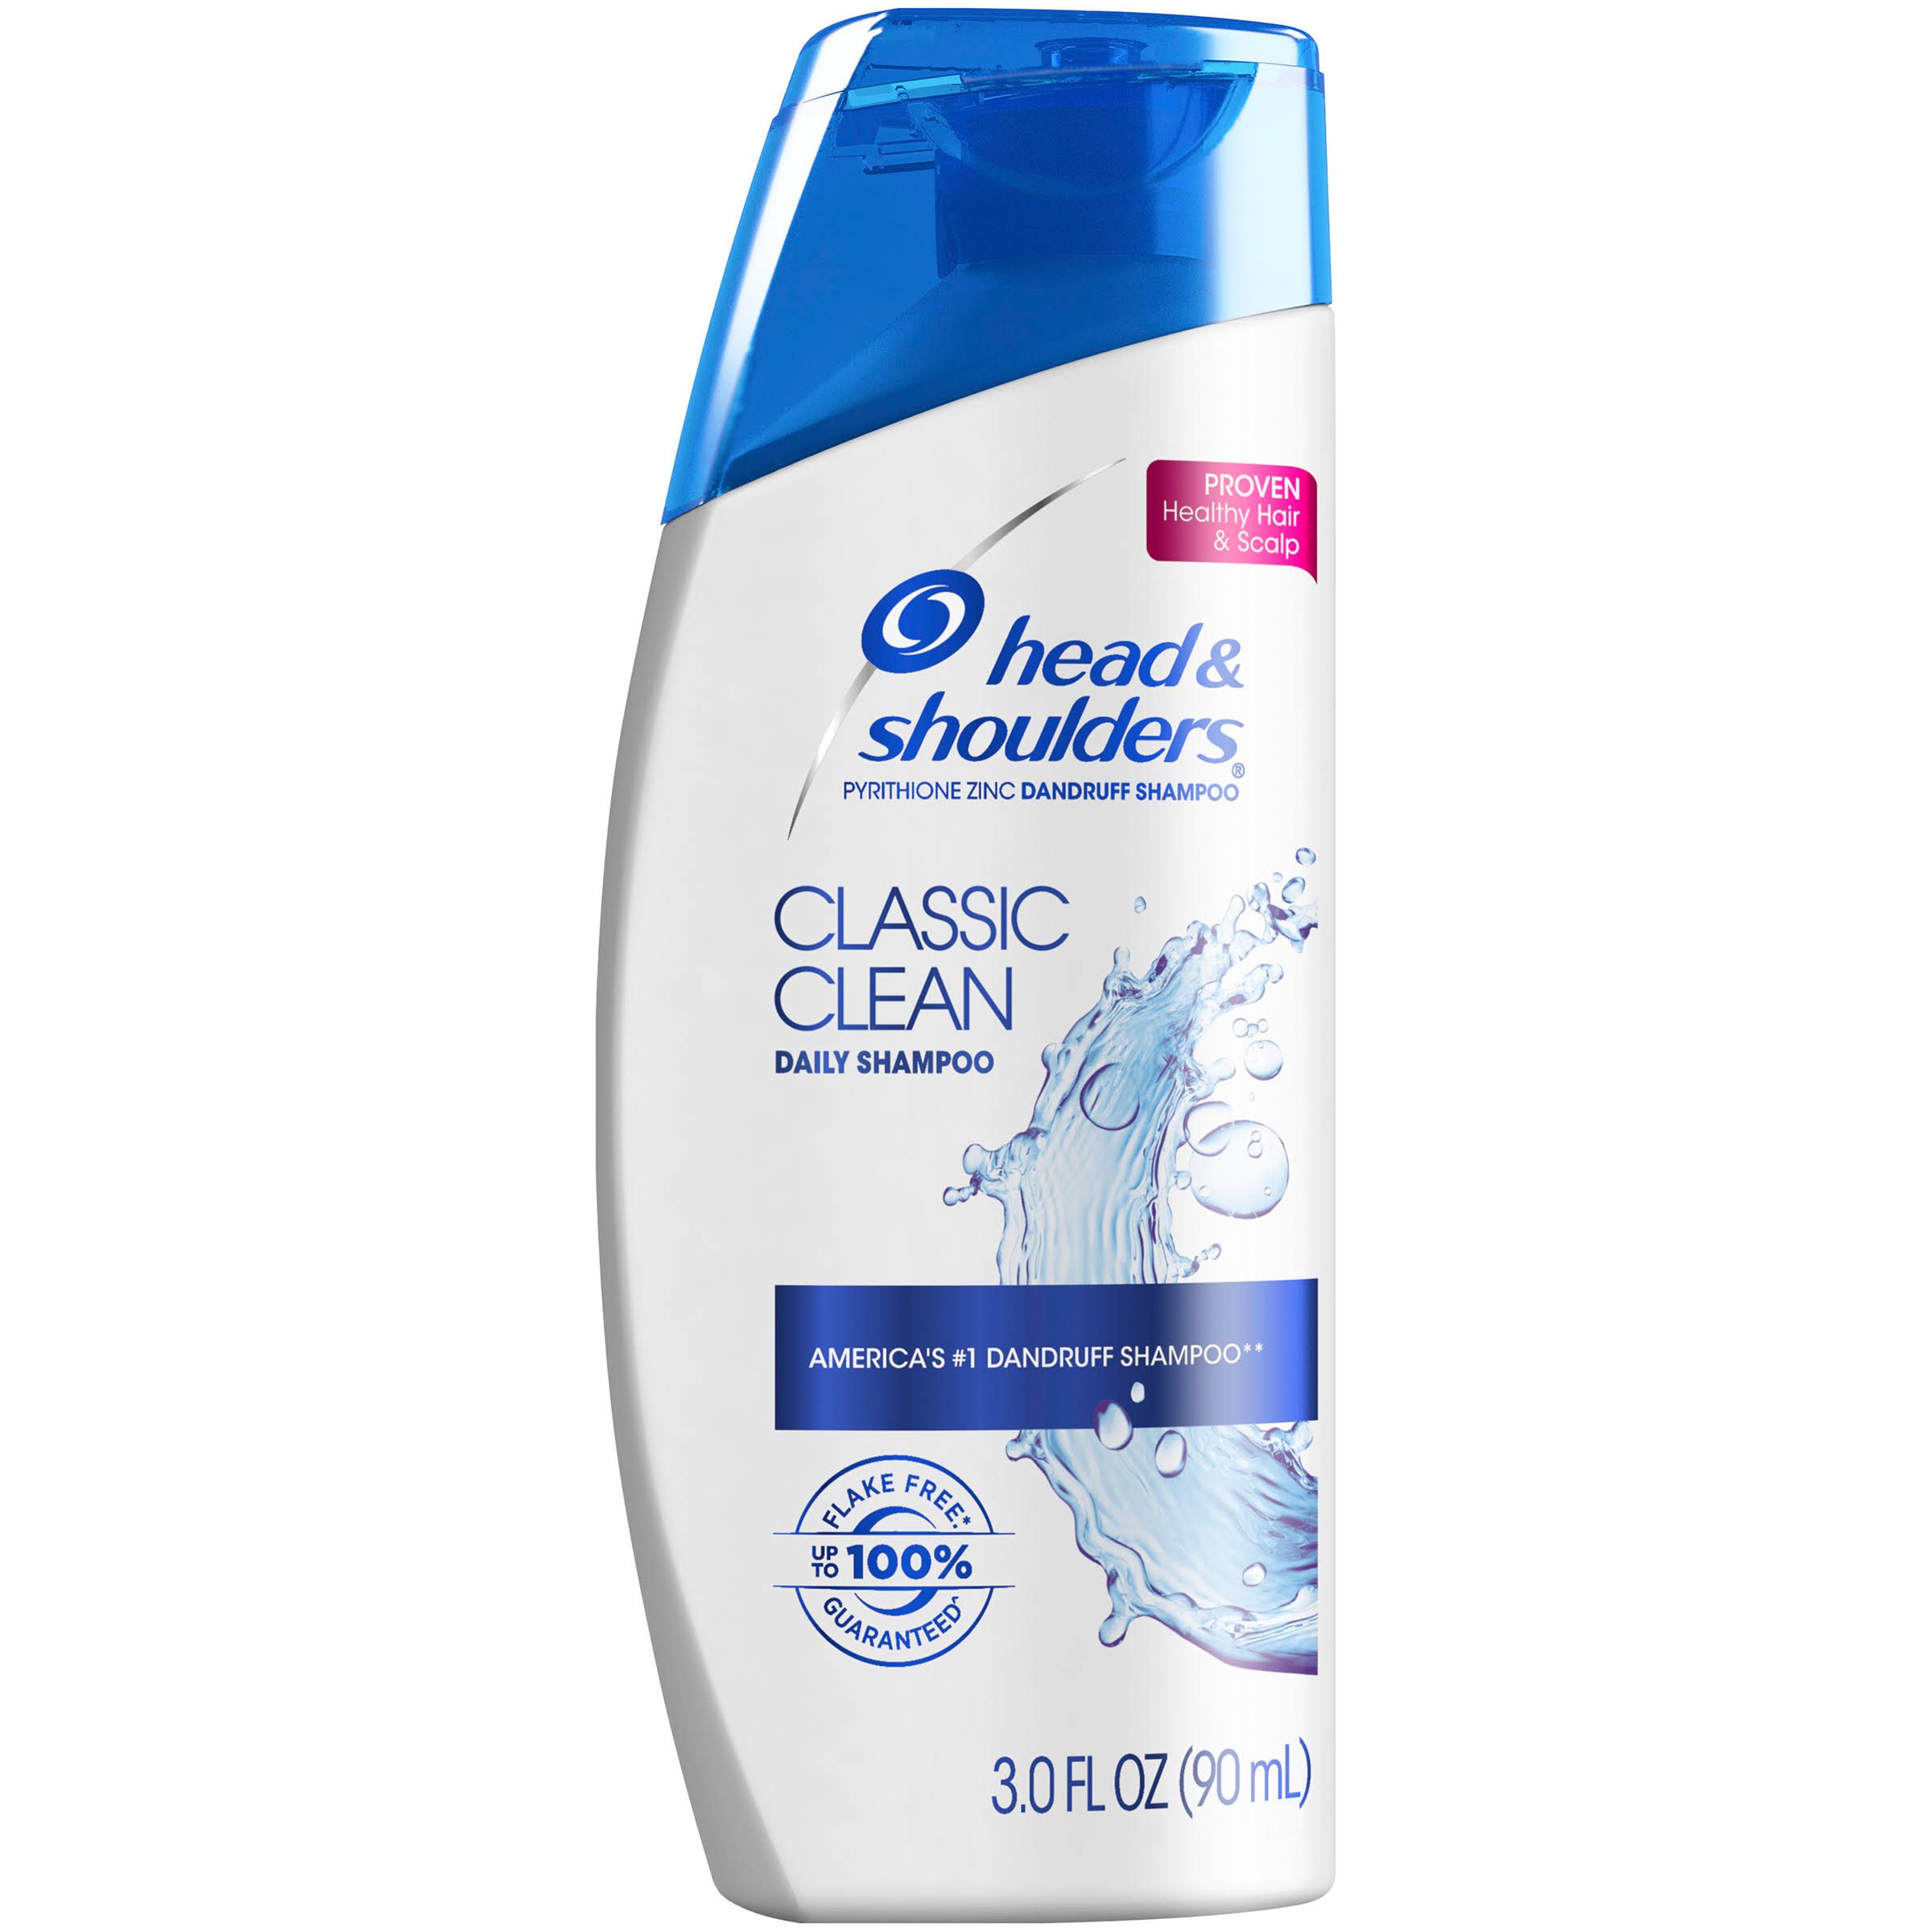 Head & Shoulders Anti-Dandruff Shampoo - Classic Clean, 3fl.oz